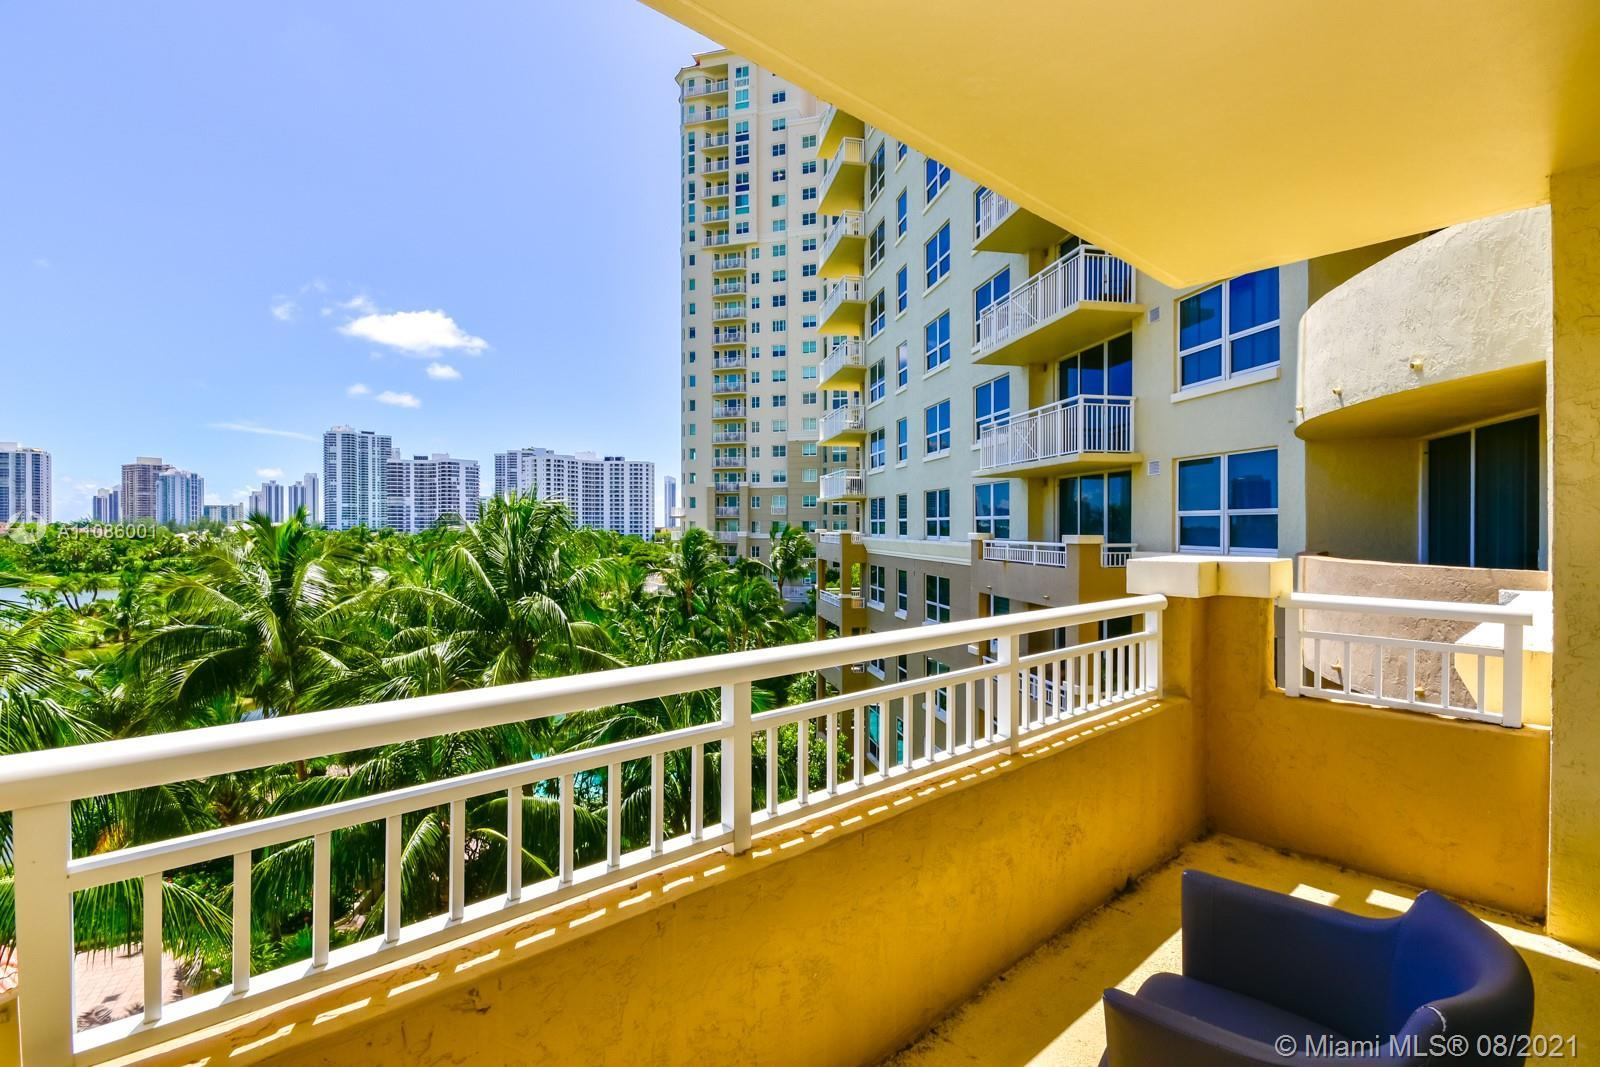 Excellent golf view.  This apt has two main bedrooms, two full bathrooms.  Located in front of Avent